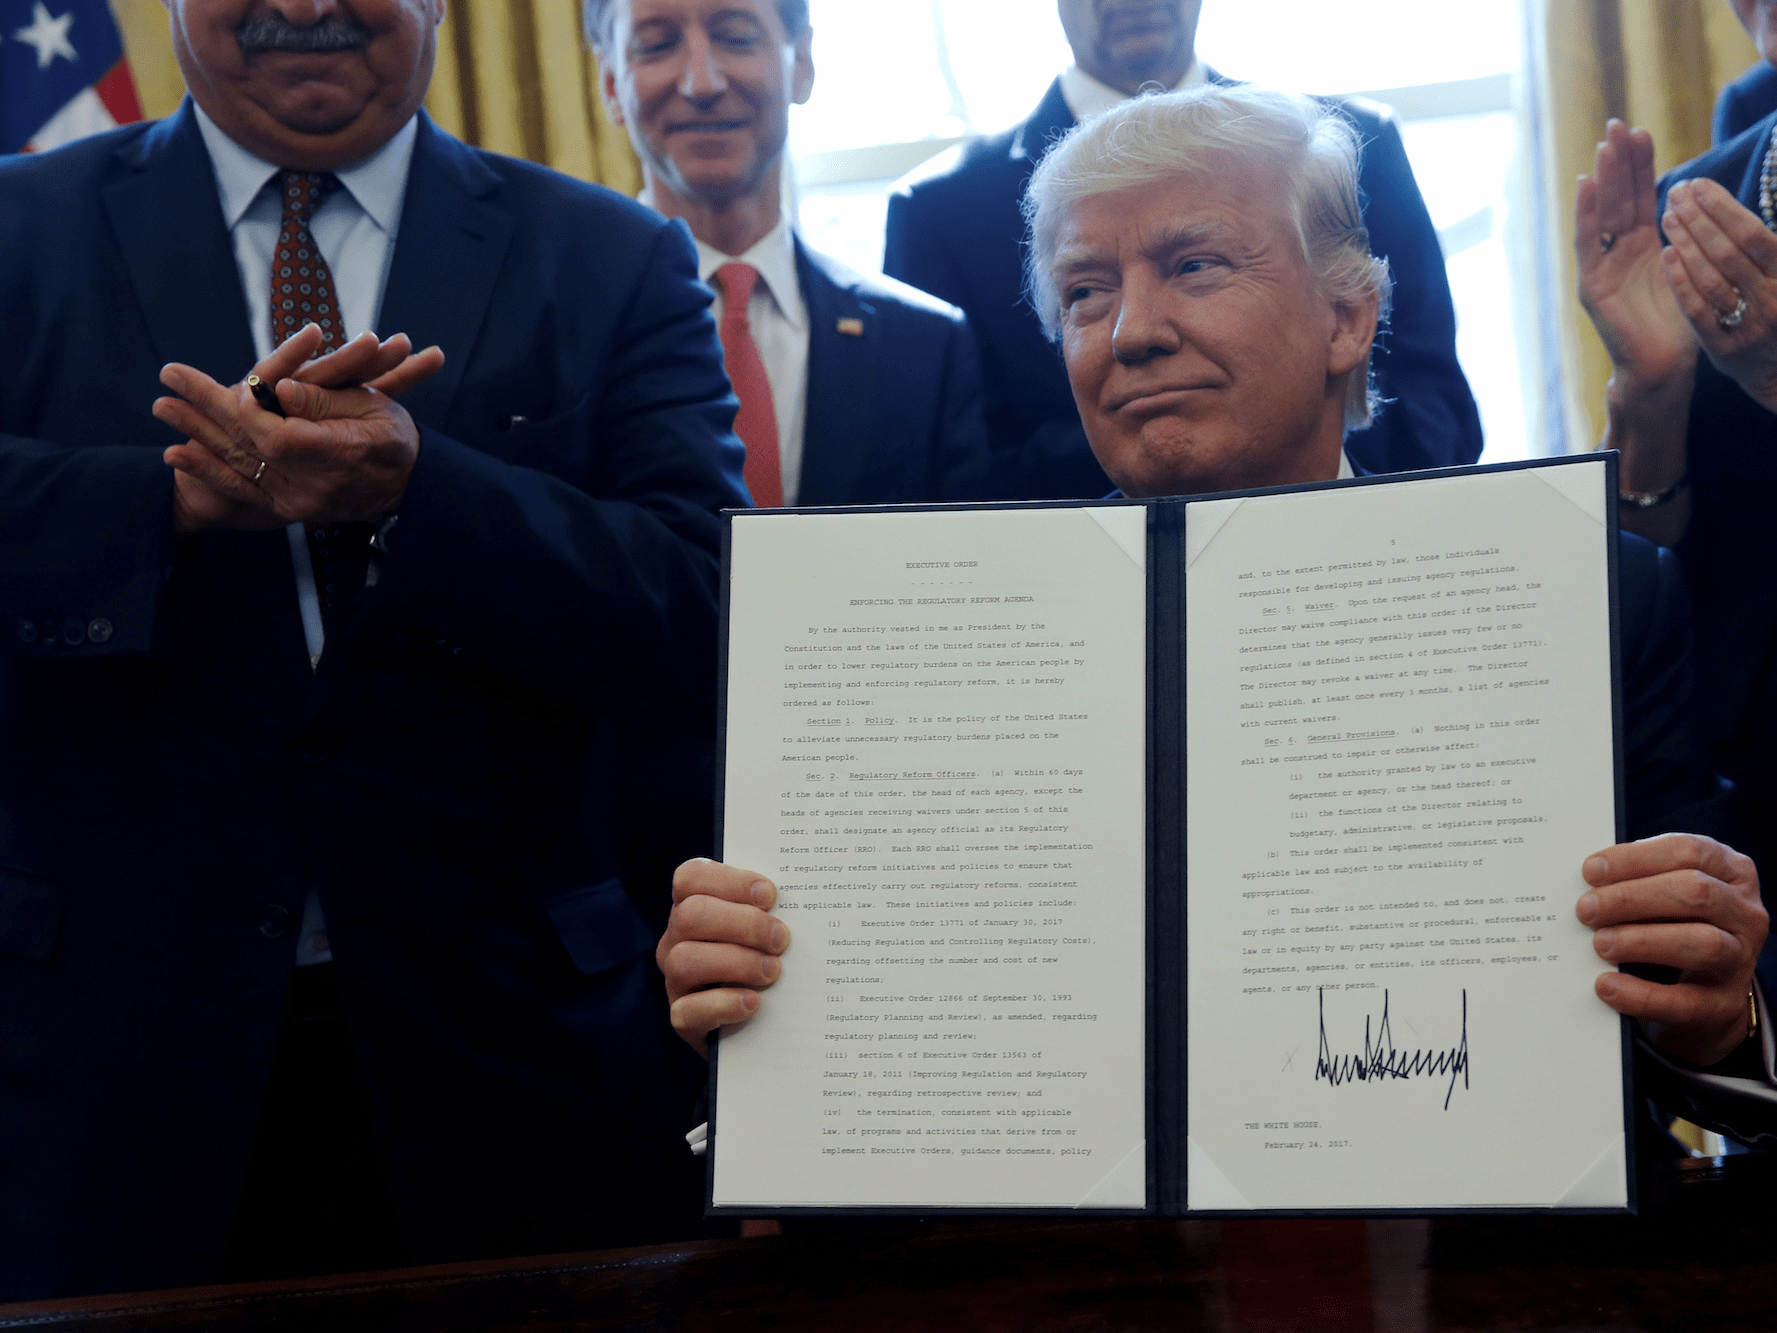 February 24: Trump signed a myriad of executive orders, rolling back many Obama-era regulations. In his first 100 days, Trump issued 90 presidential actions, including 32 executive orders.